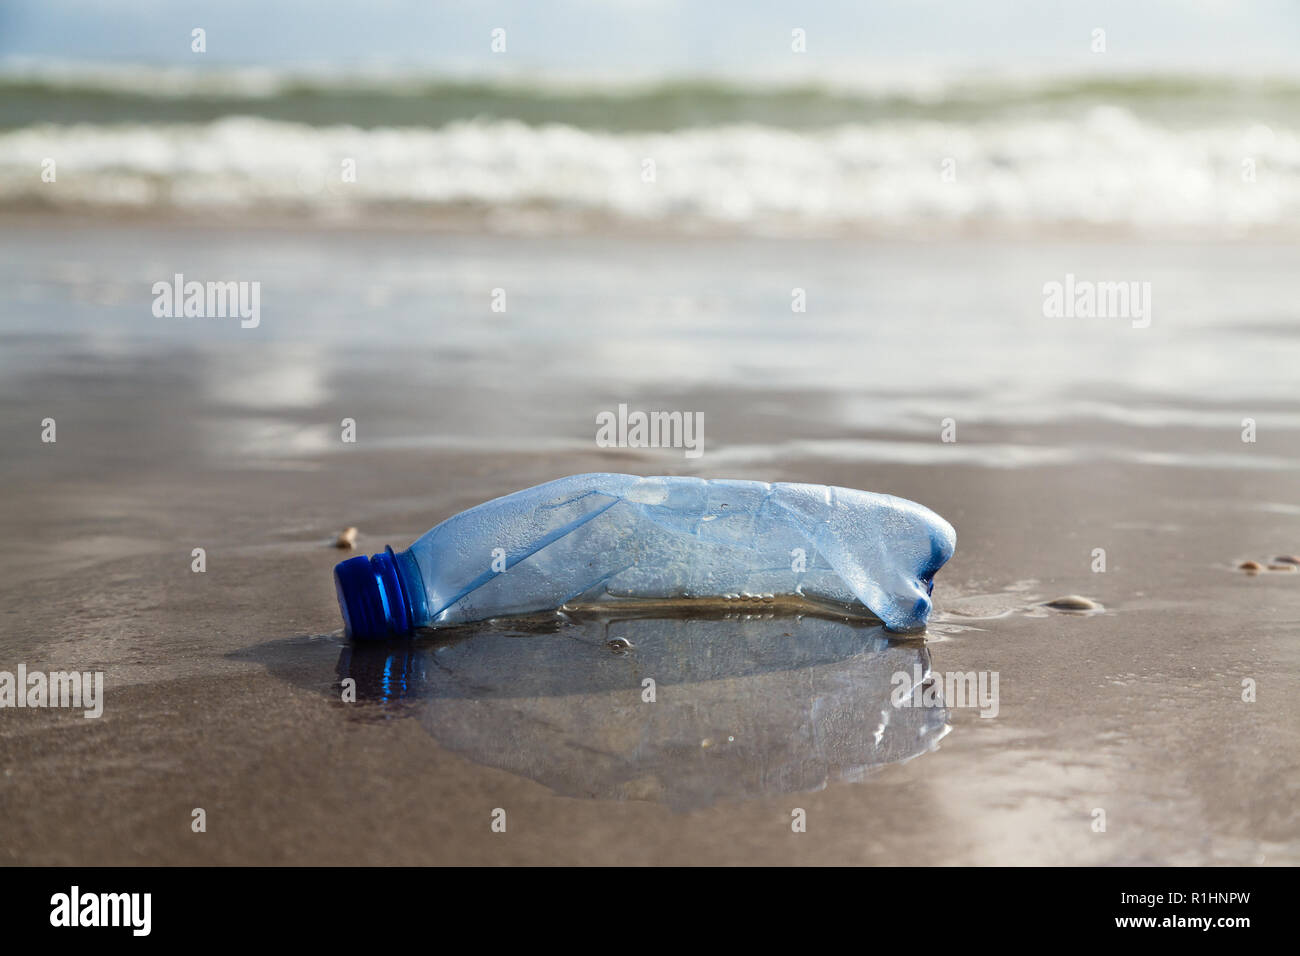 plastic bottle on the beach - Stock Image